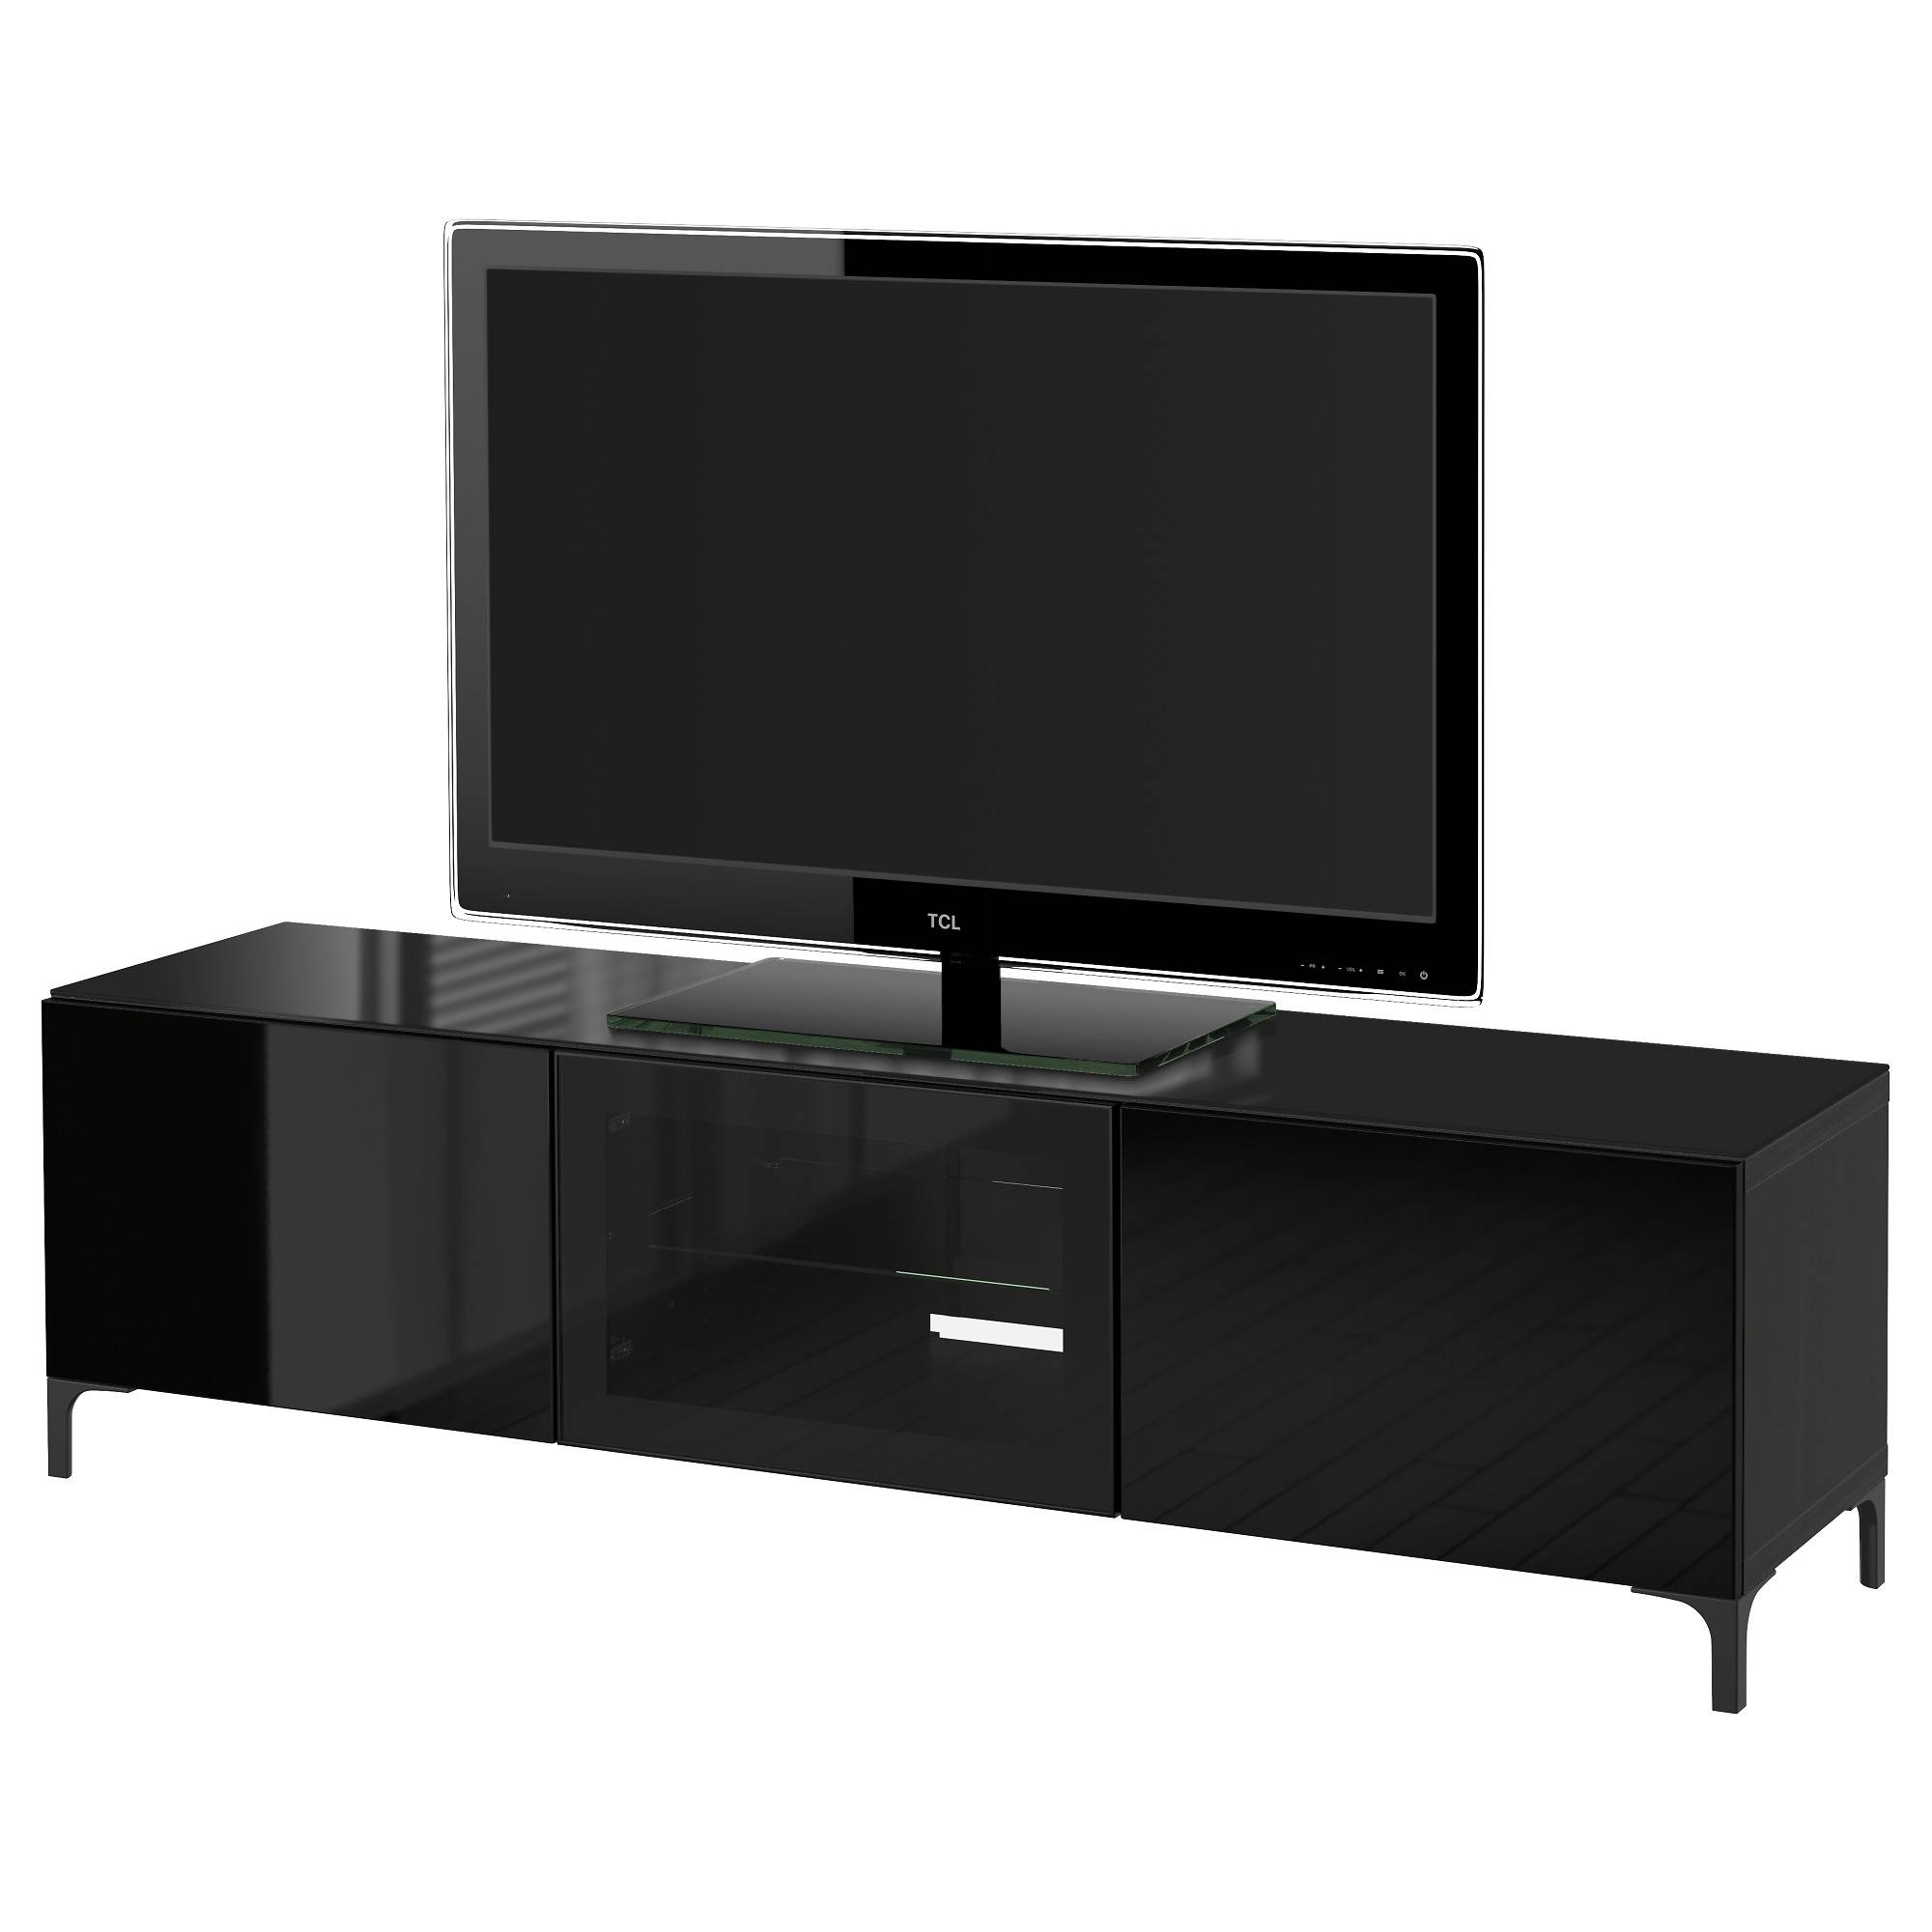 Tv Stands & Entertainment Centers - Ikea intended for Black Tv Cabinets With Doors (Image 15 of 15)